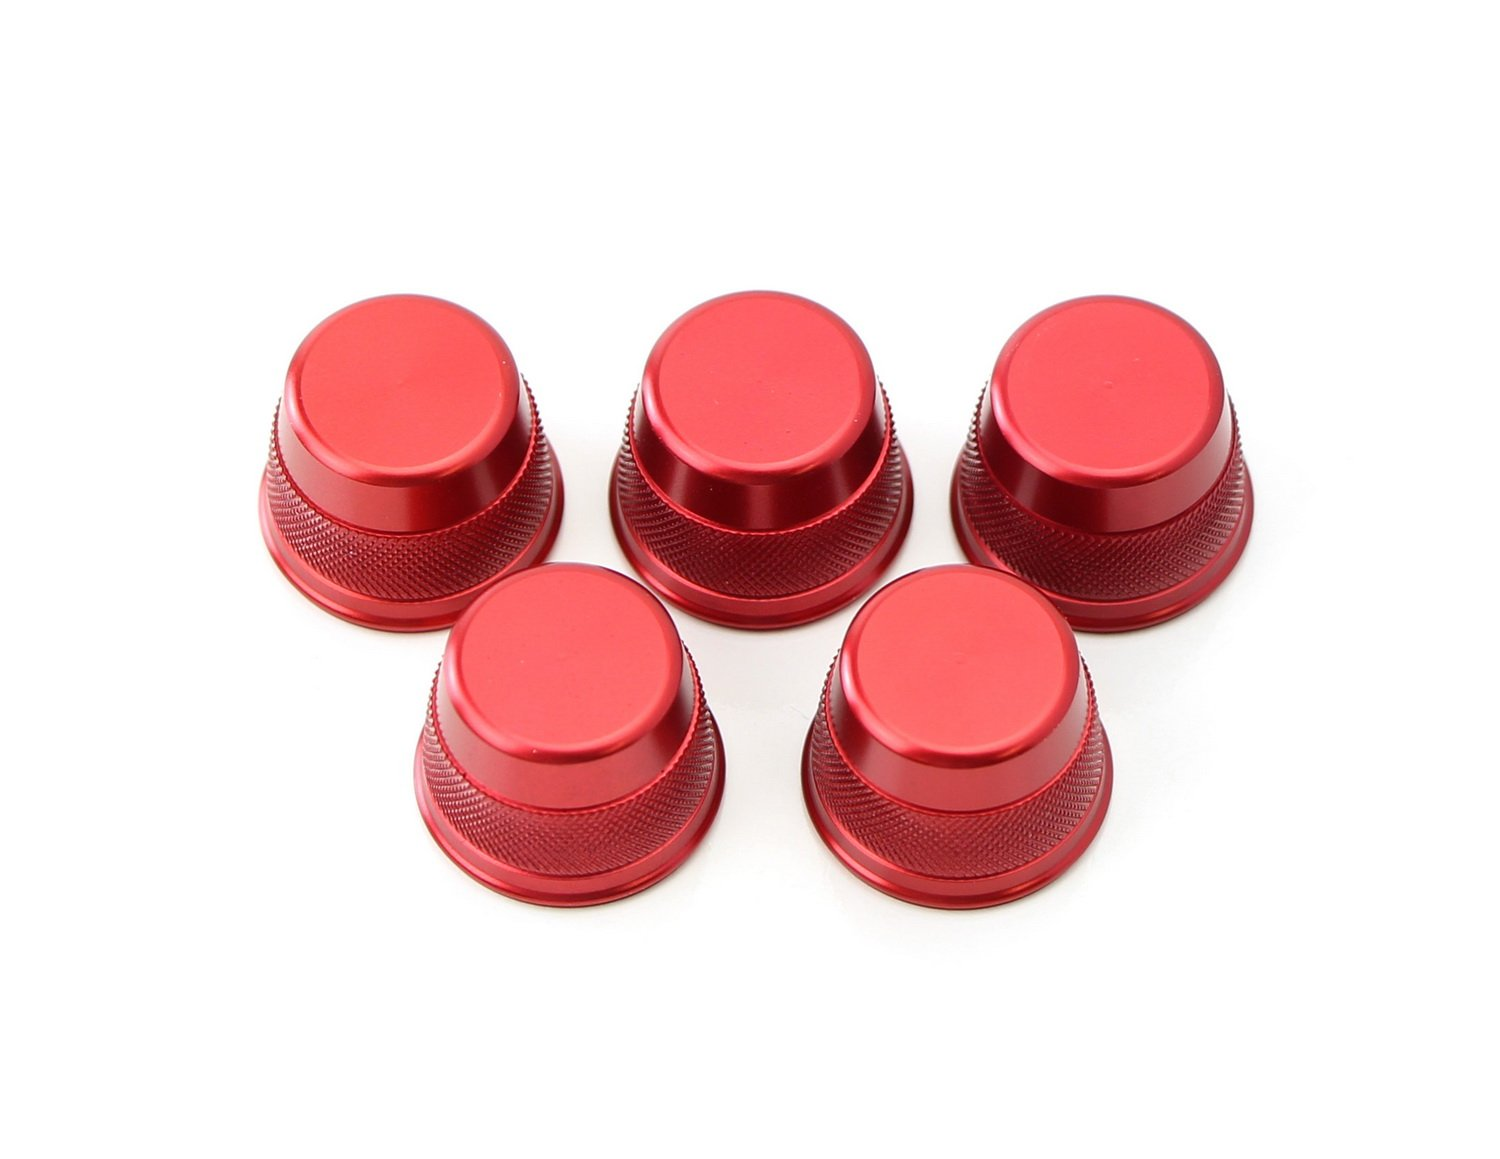 2016-up GLC Class iJDMTOY 5pc Sports Red Aluminum Air Conditioner Vent//Opening Knob Decoration Covers For 2015-up Mercedes W205 C-Class